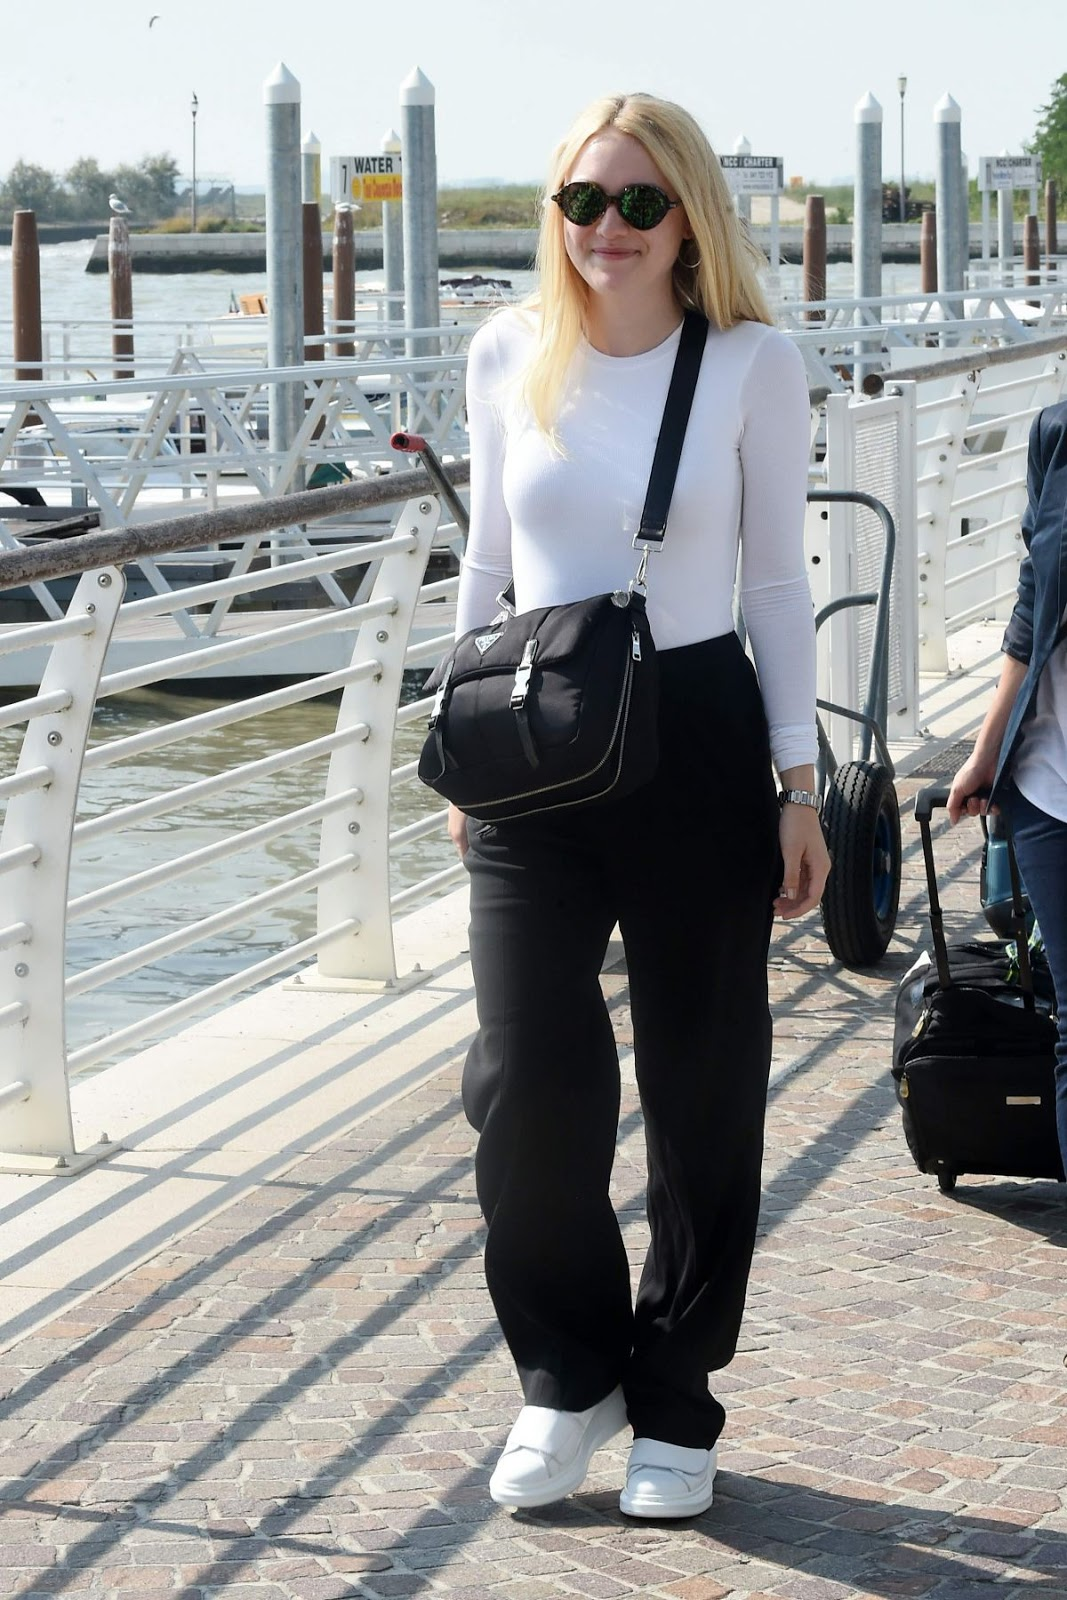 Dakota Fanning with Sunglasses Out And About In Venice